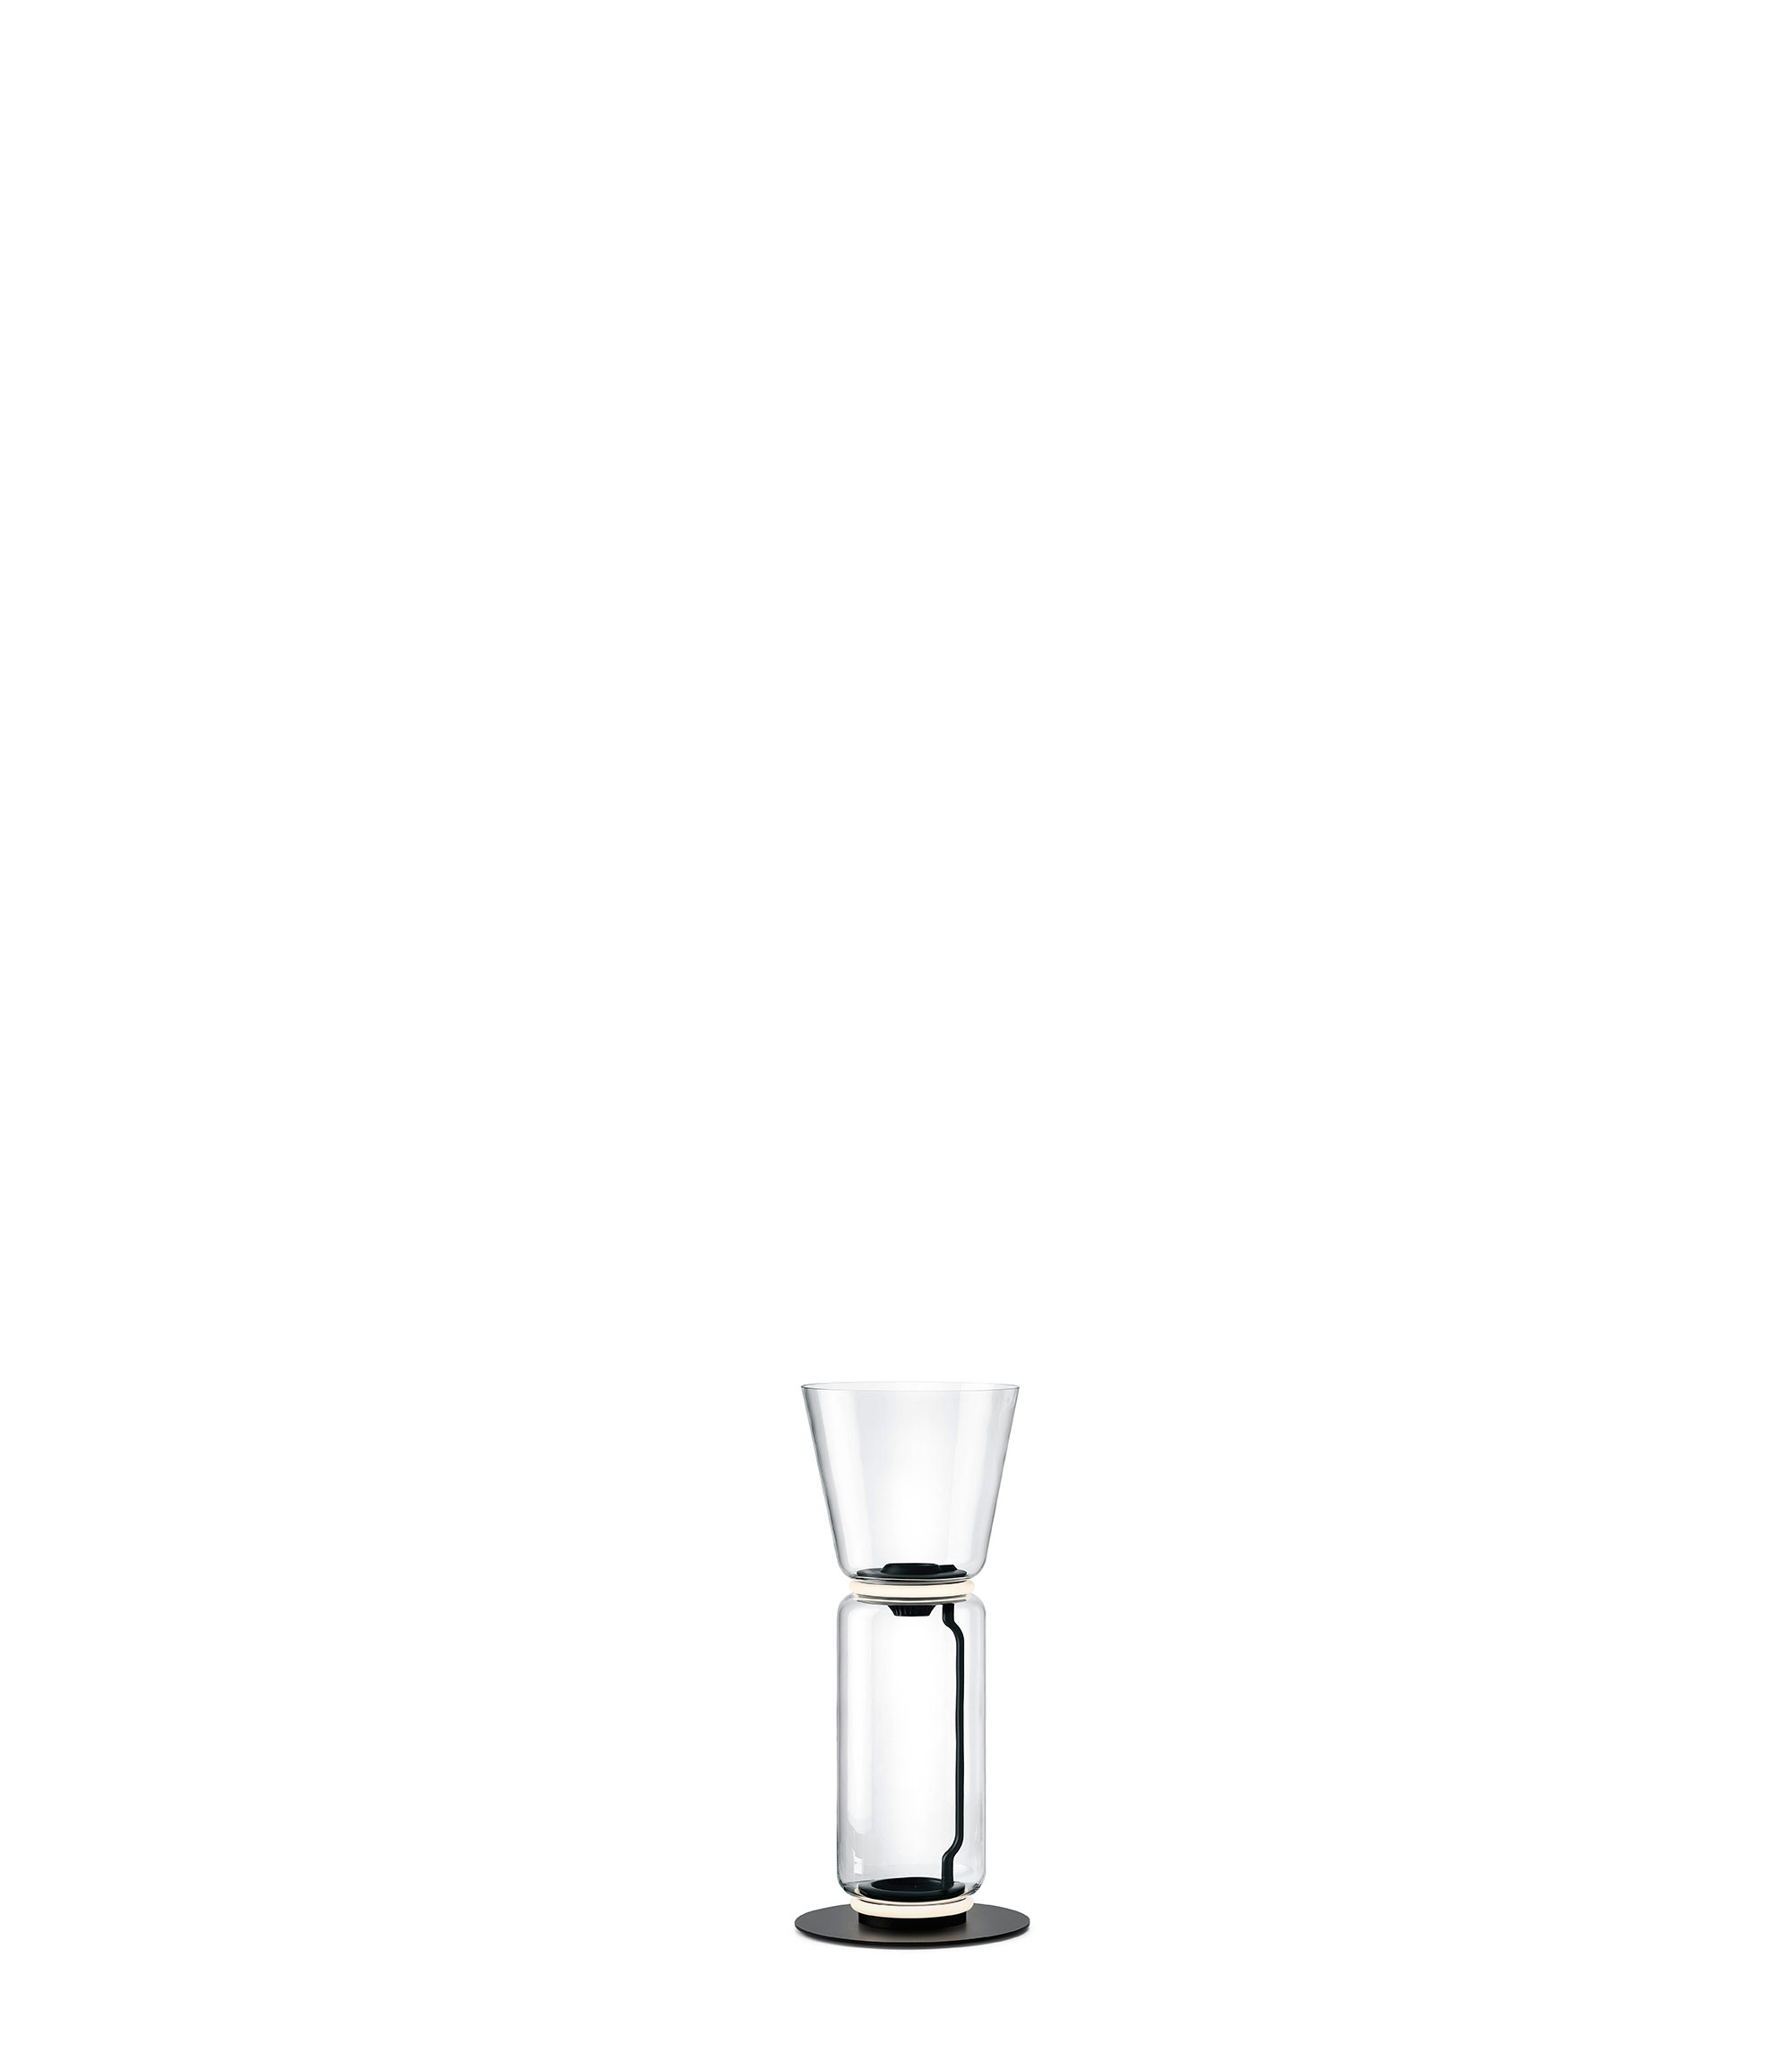 Noctambule floor 1 high cylinders and cone small base grcic flos F0265000 product still life big